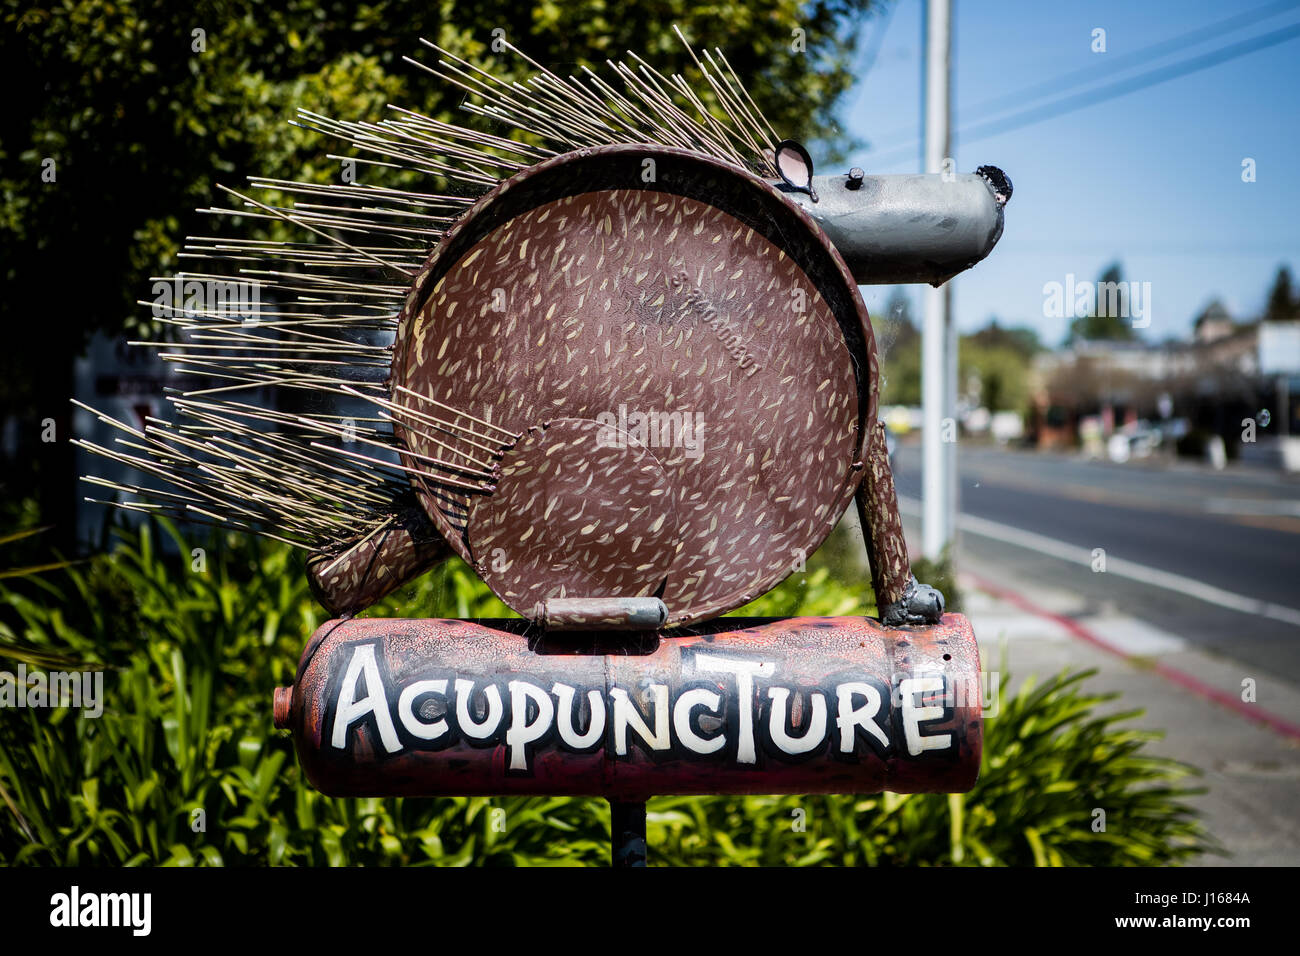 Sebastapol, California. The town is littered with art and sculptures by 'junk artist' Patrick Amiot. - Stock Image